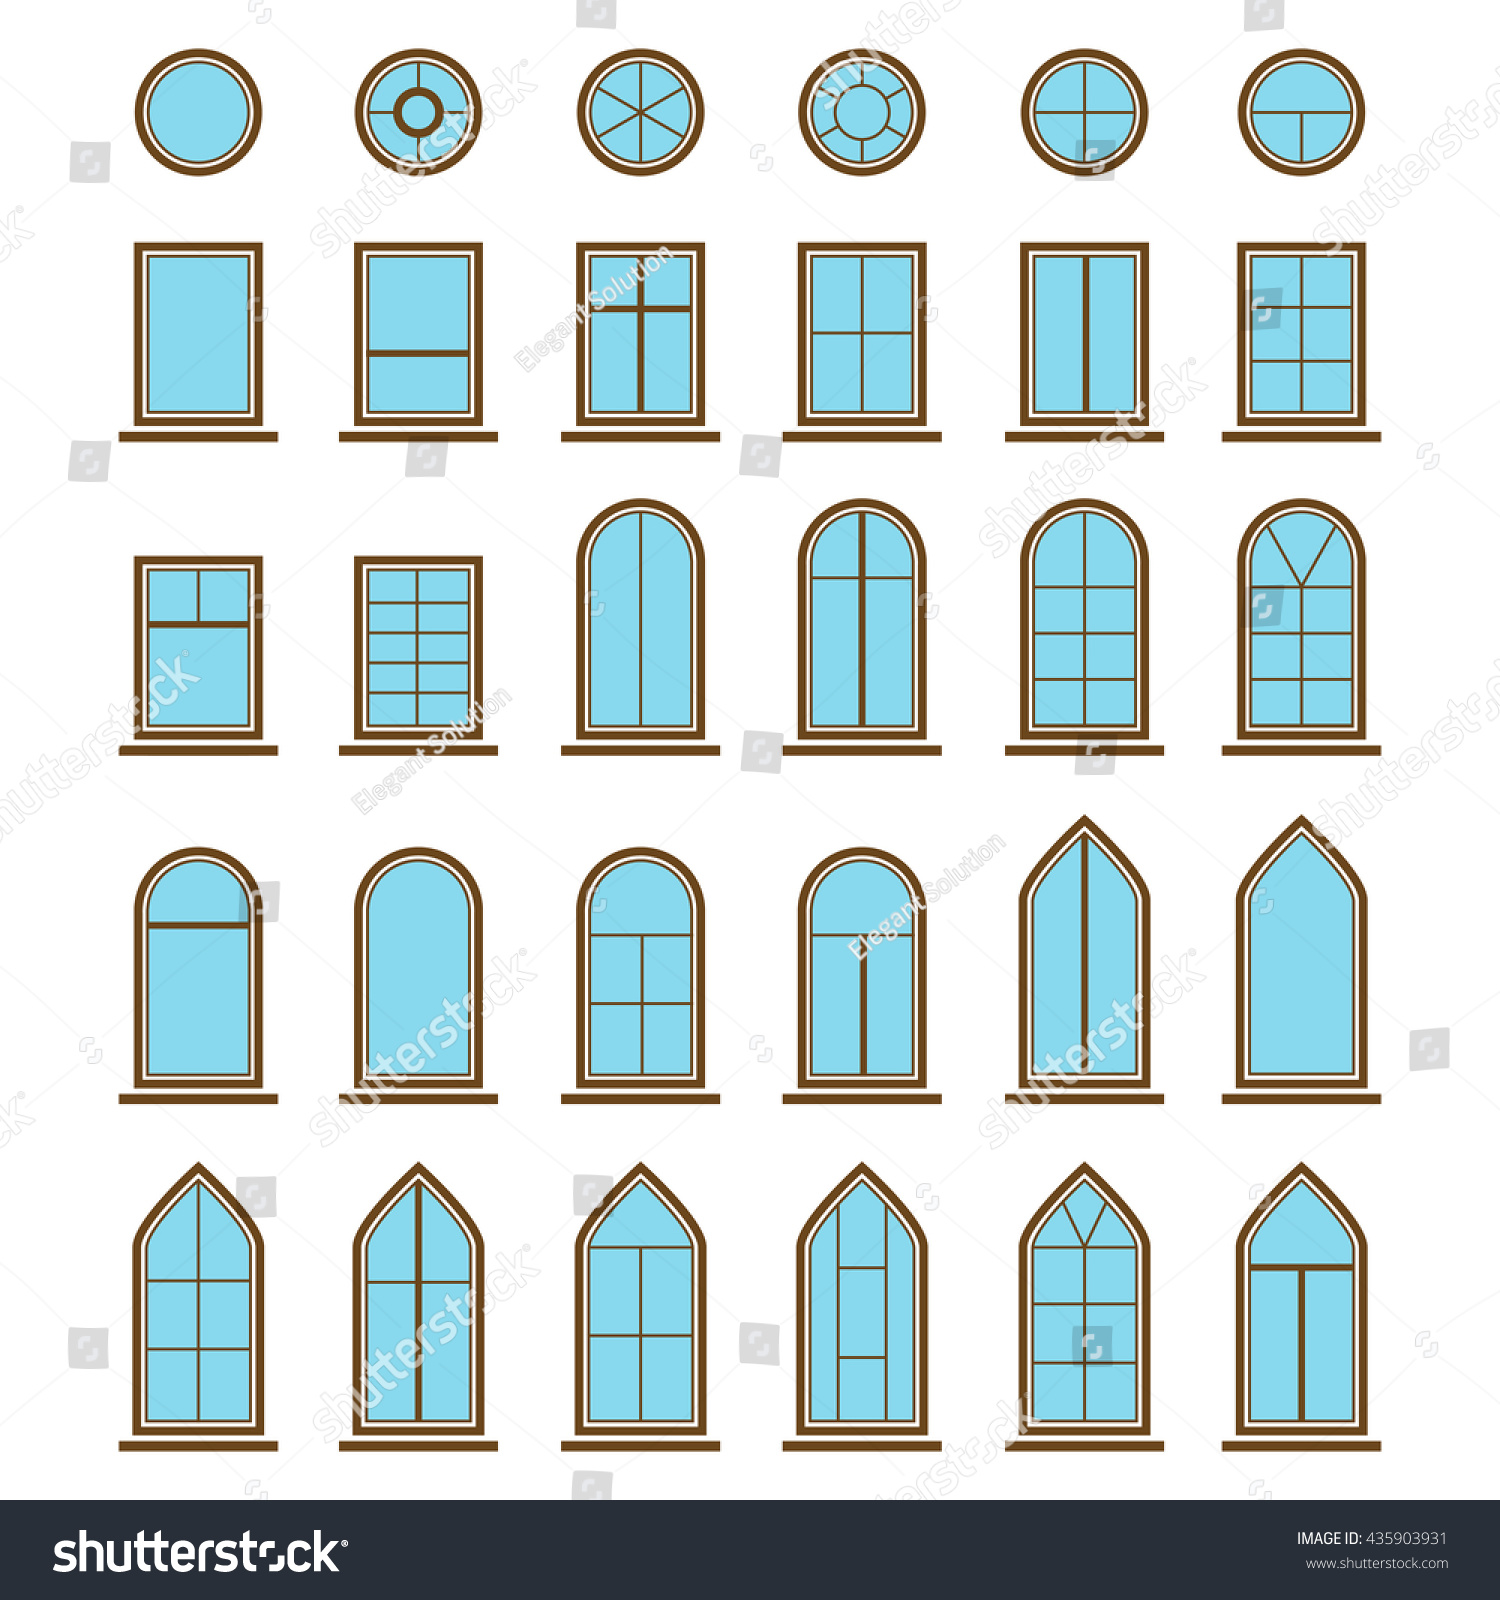 Set Different Icons Window Windowpane Pane Stock Vector